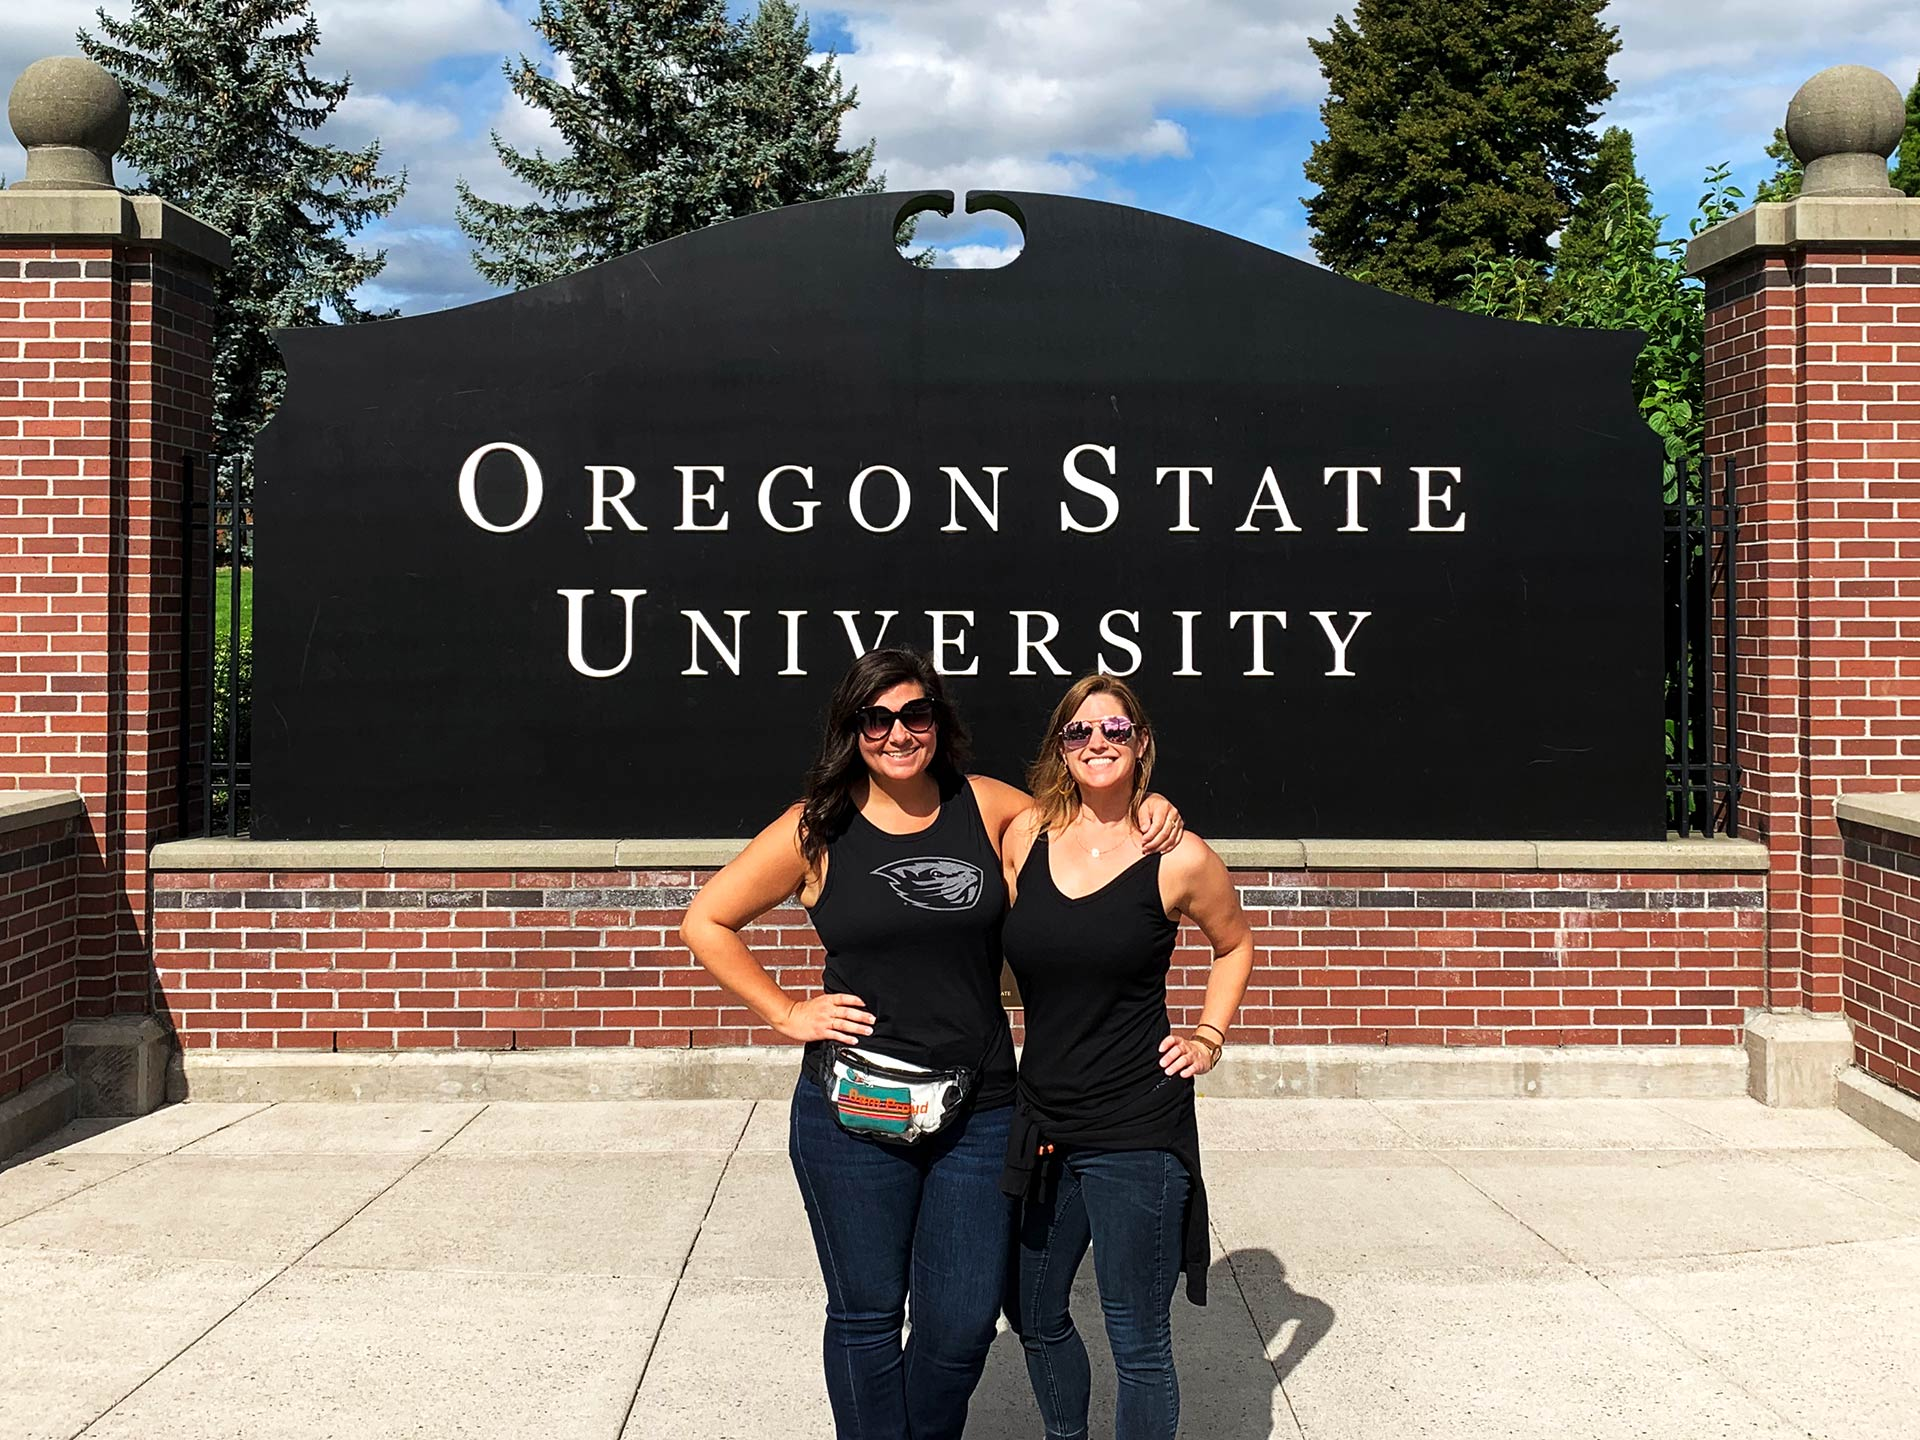 Heather Wofford and Amanda Price standing in front of the OSU football sign.